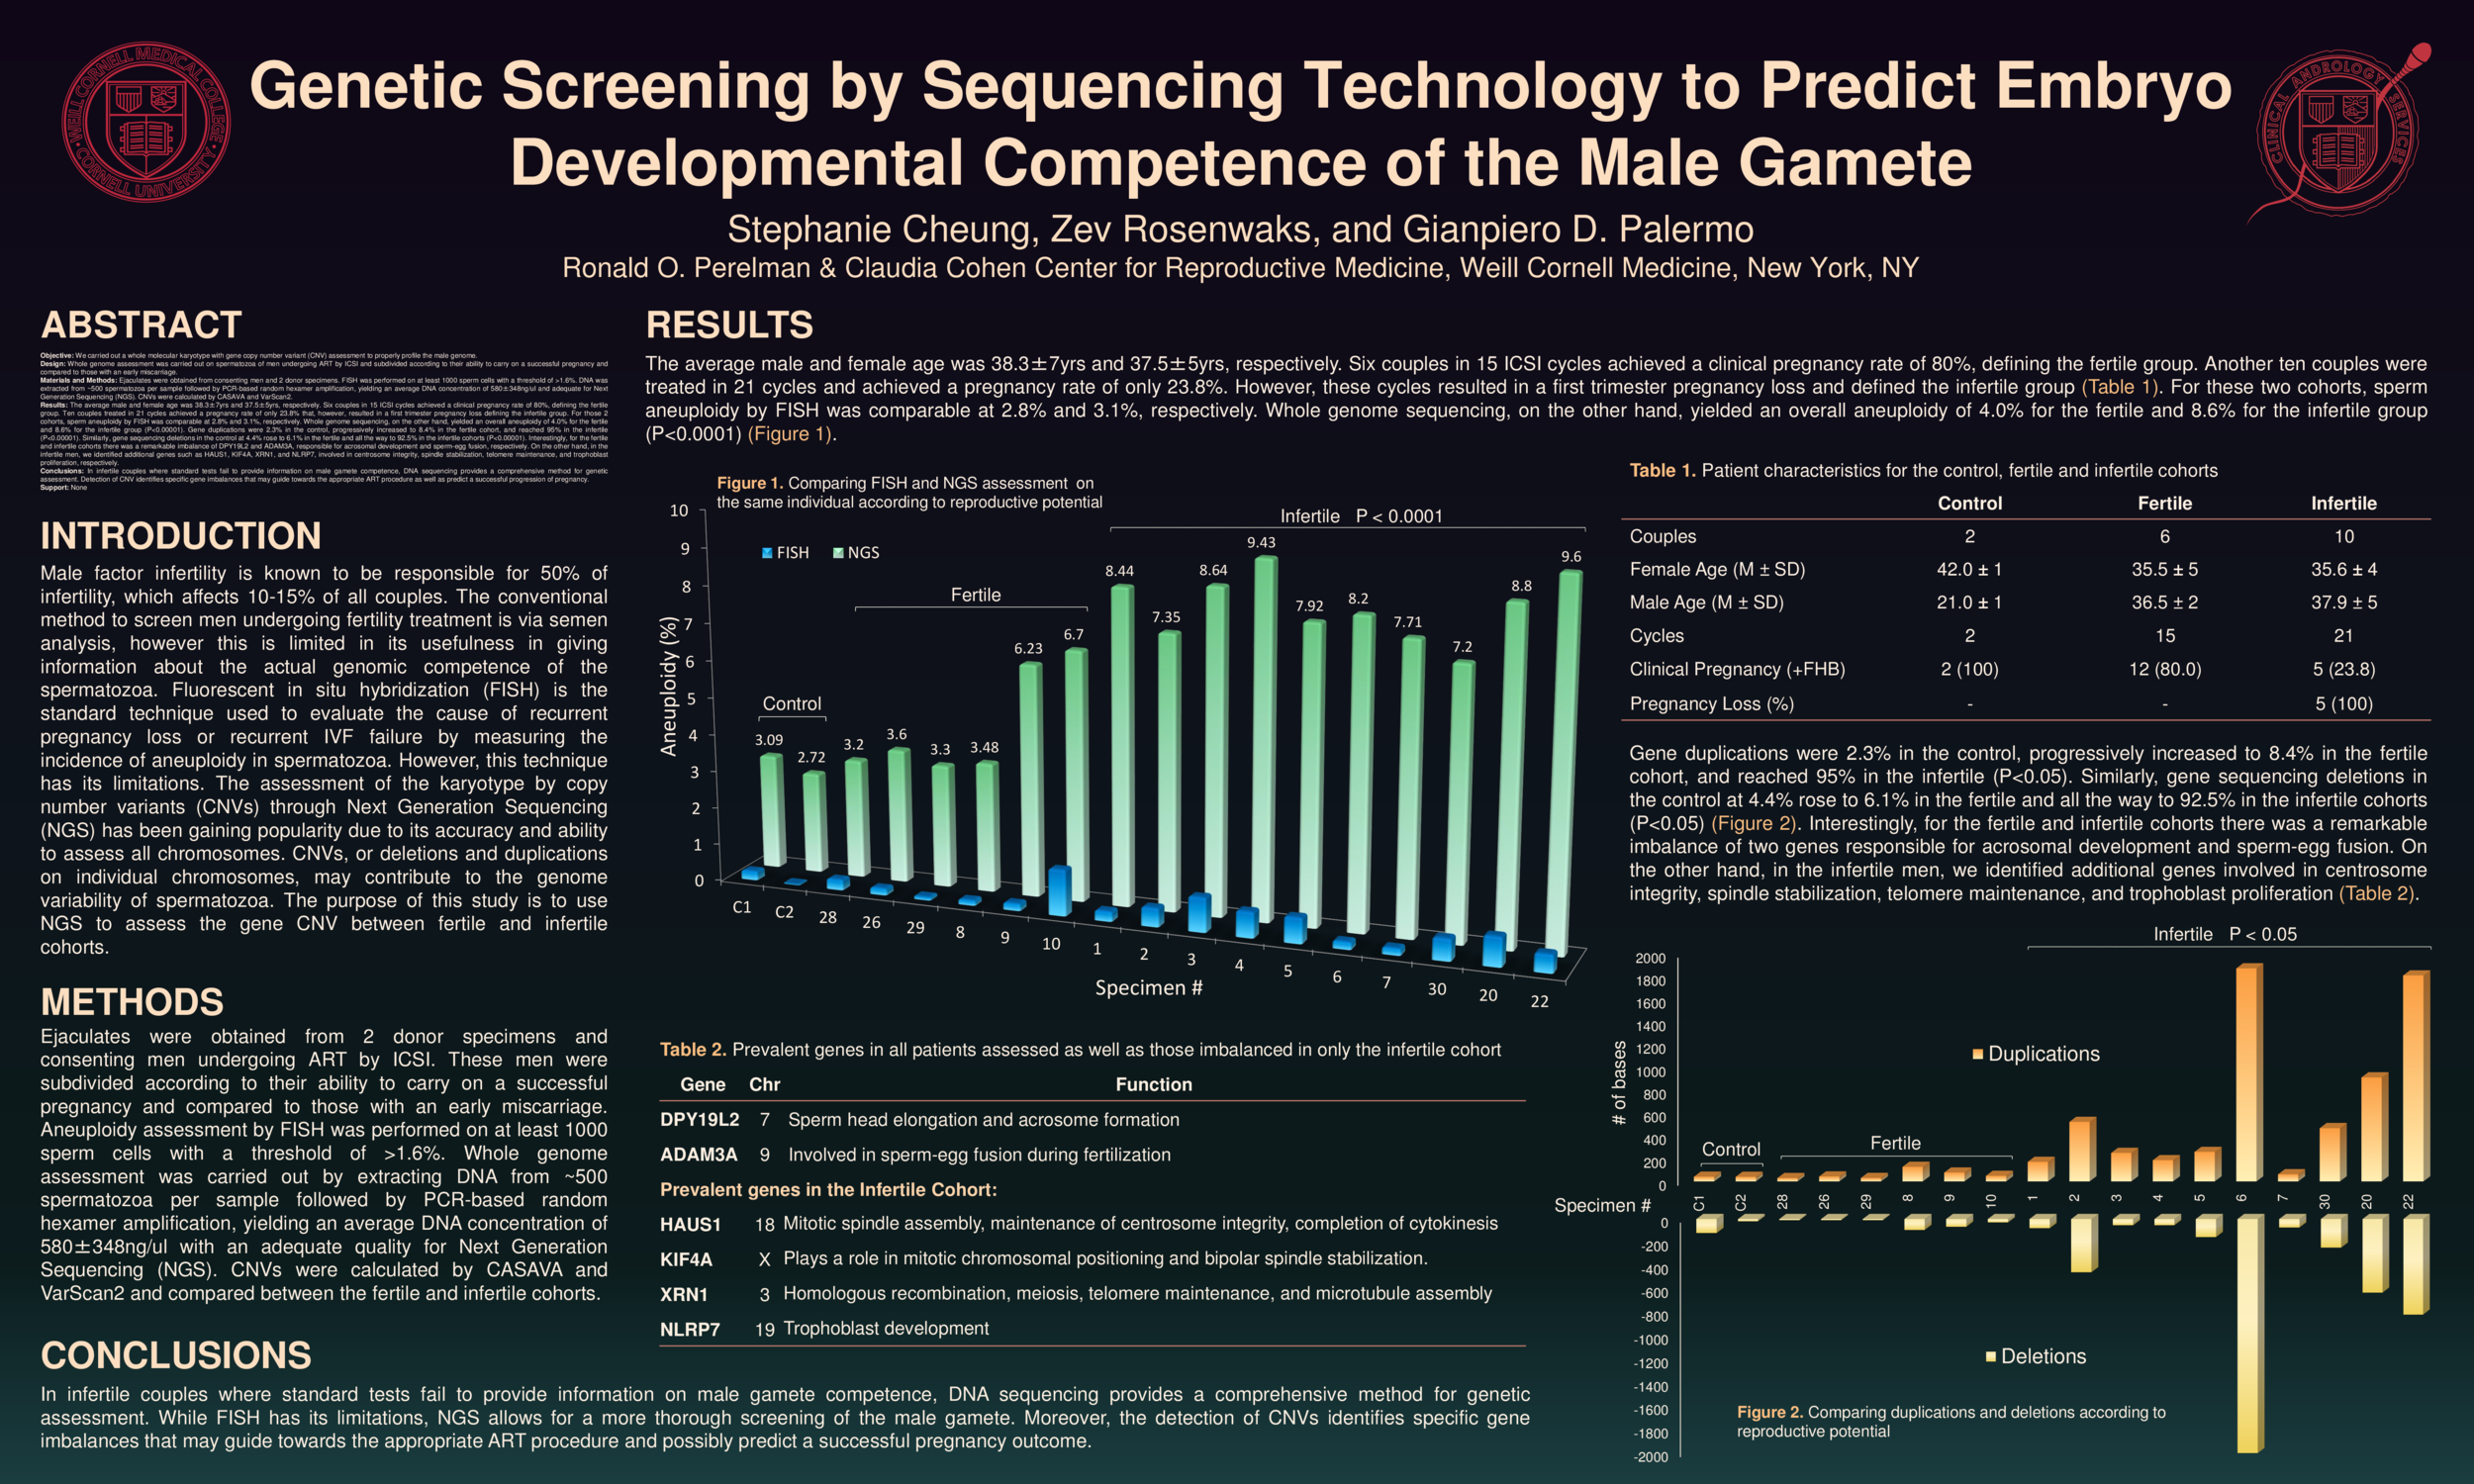 Genetic-Screening-by-Sequencing-Technology-to-Predict-Embryo-Developmental-Competence-of-the-Male-Ga.png